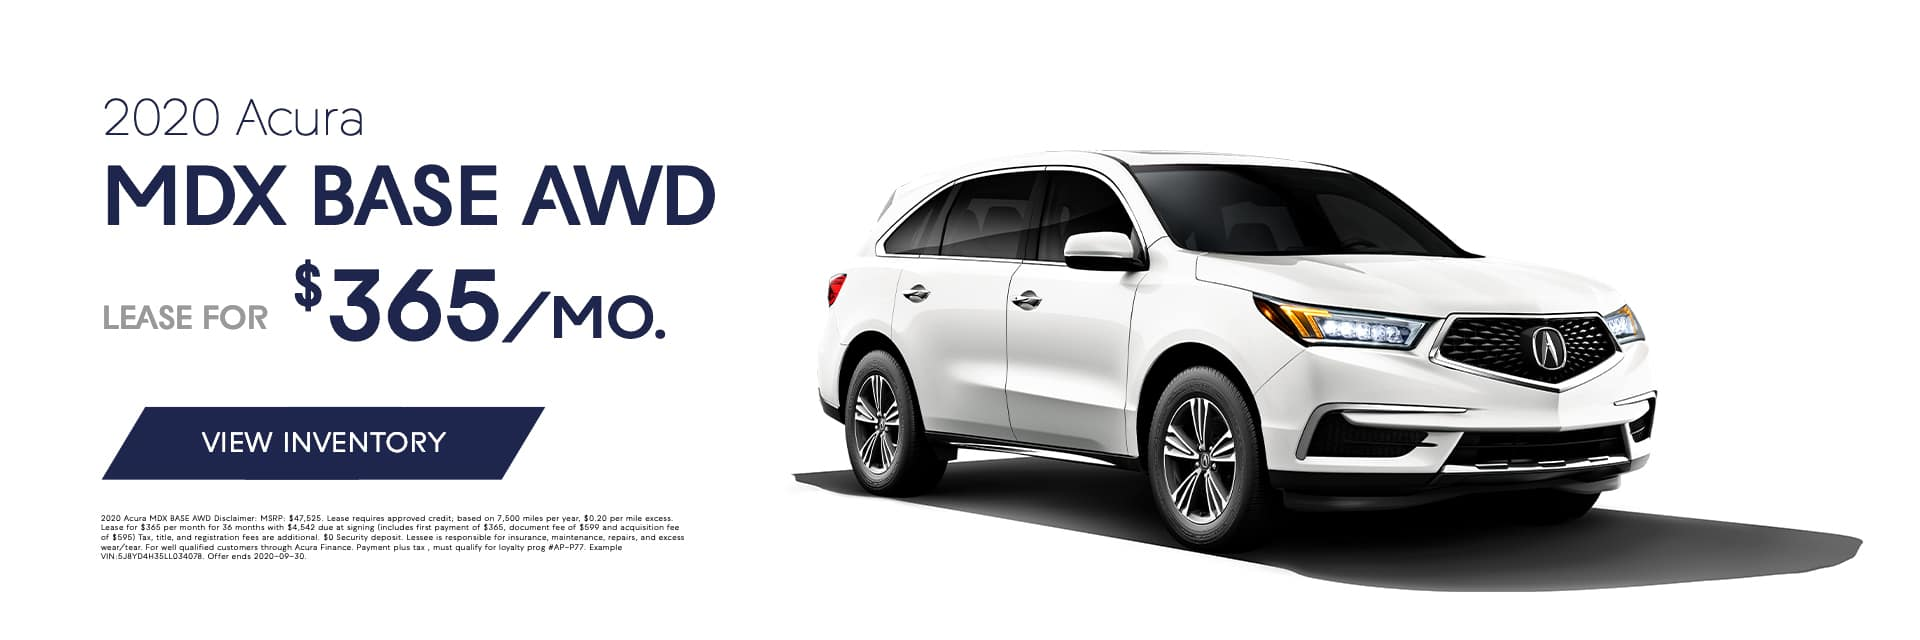 EAG_BAcura_Banner_2020 Acura MDX BASE AWD